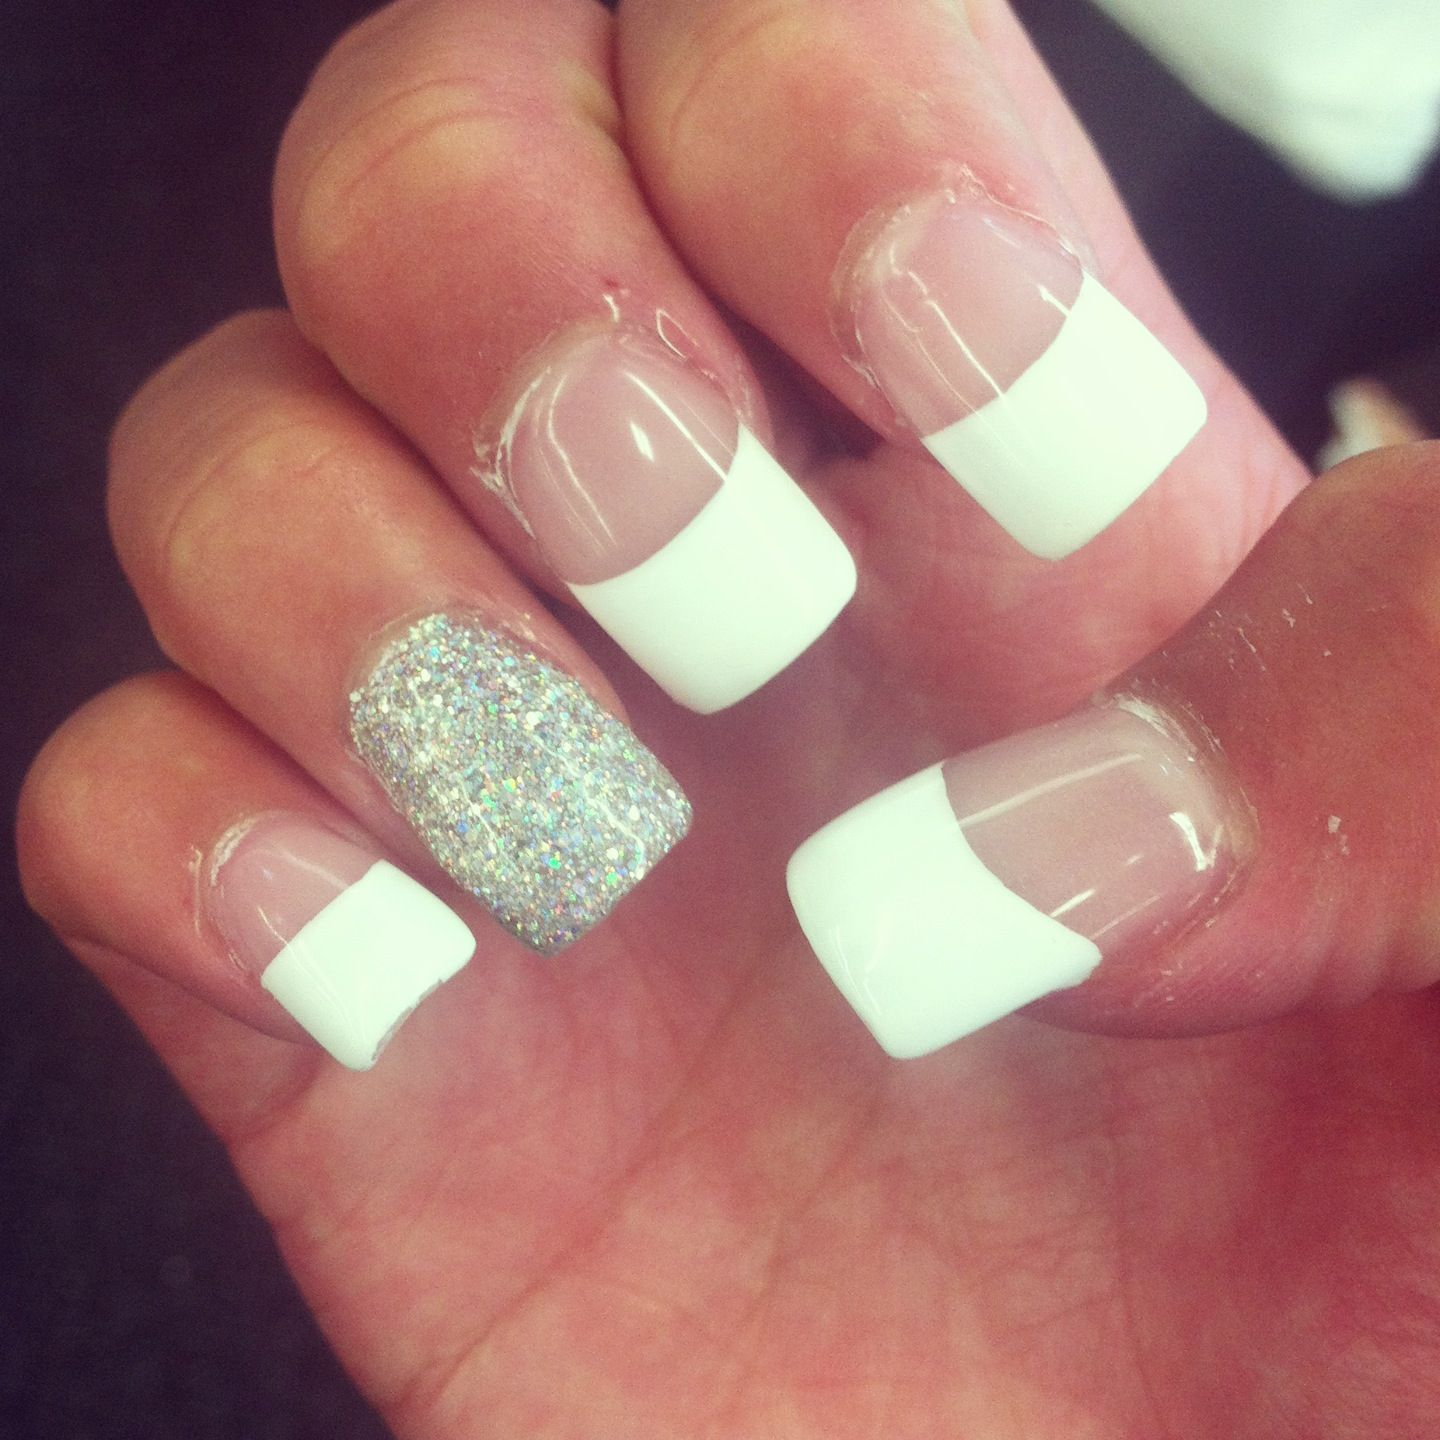 Prom Nail Ideas For Long: Prom Nails But Not So Long!